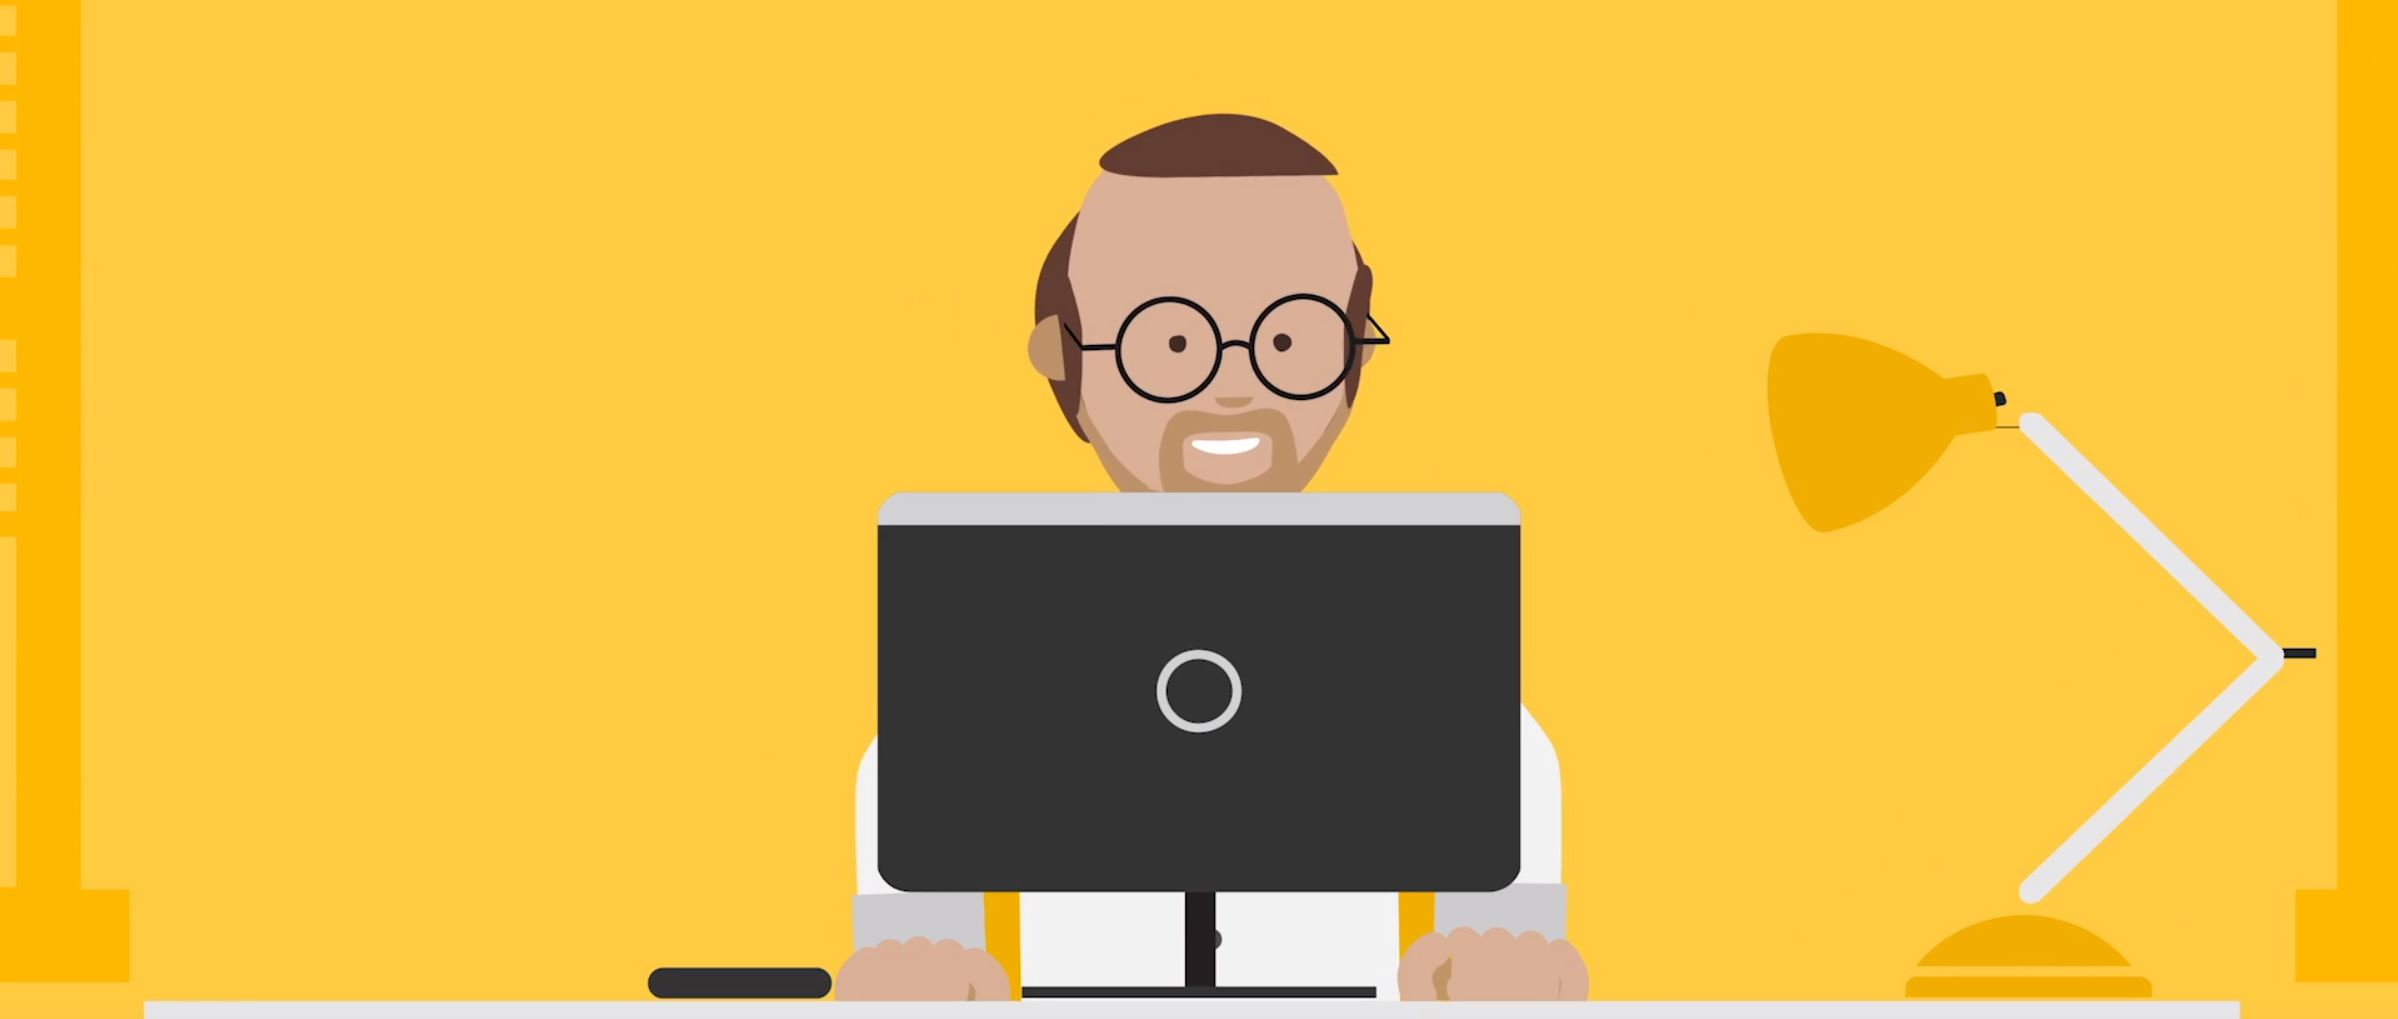 2D character animation image 13 for Microsoft Innovation - manufacturing project